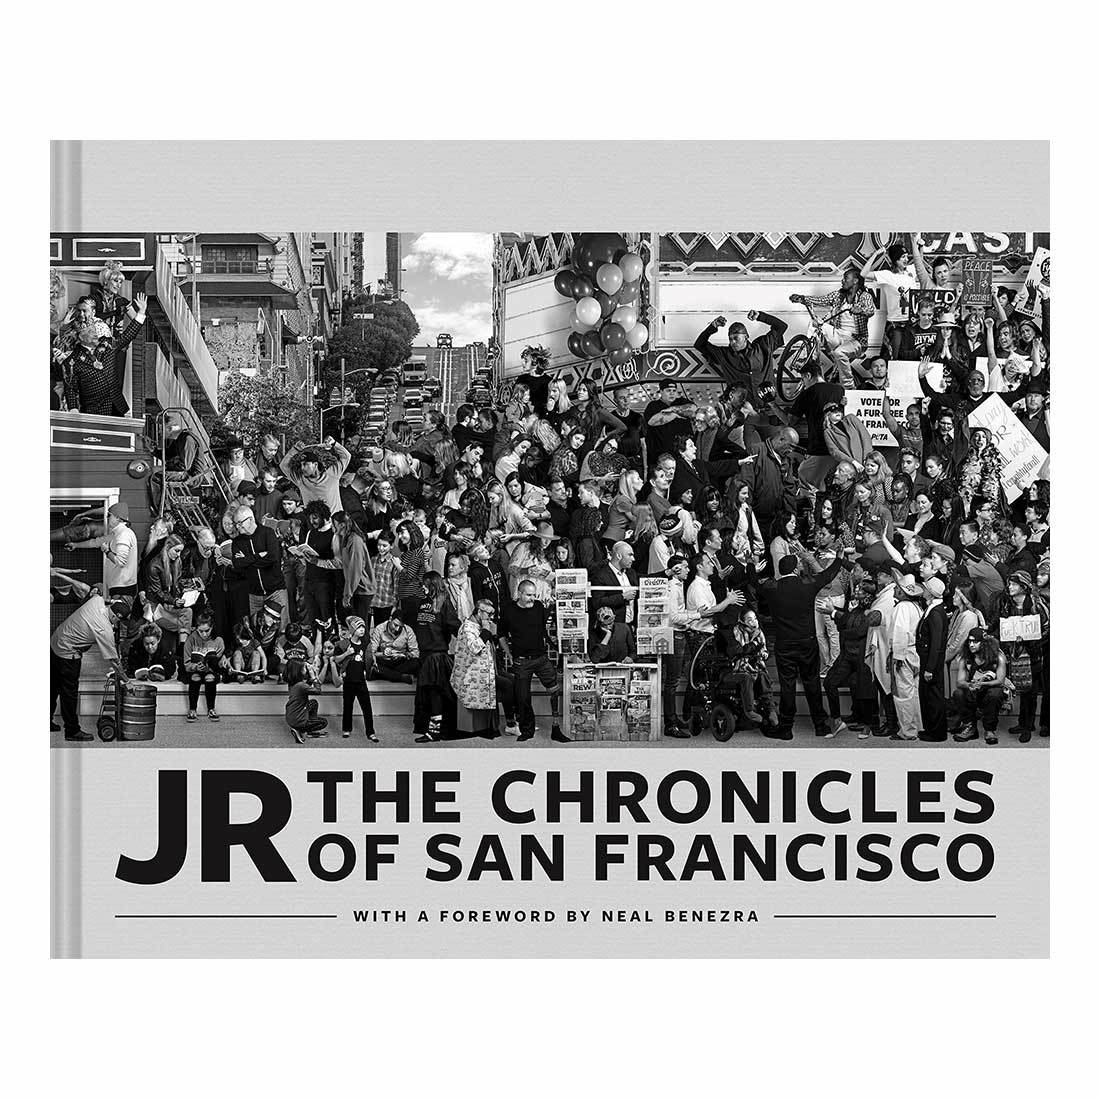 JR: The Chronicles of San Francisco